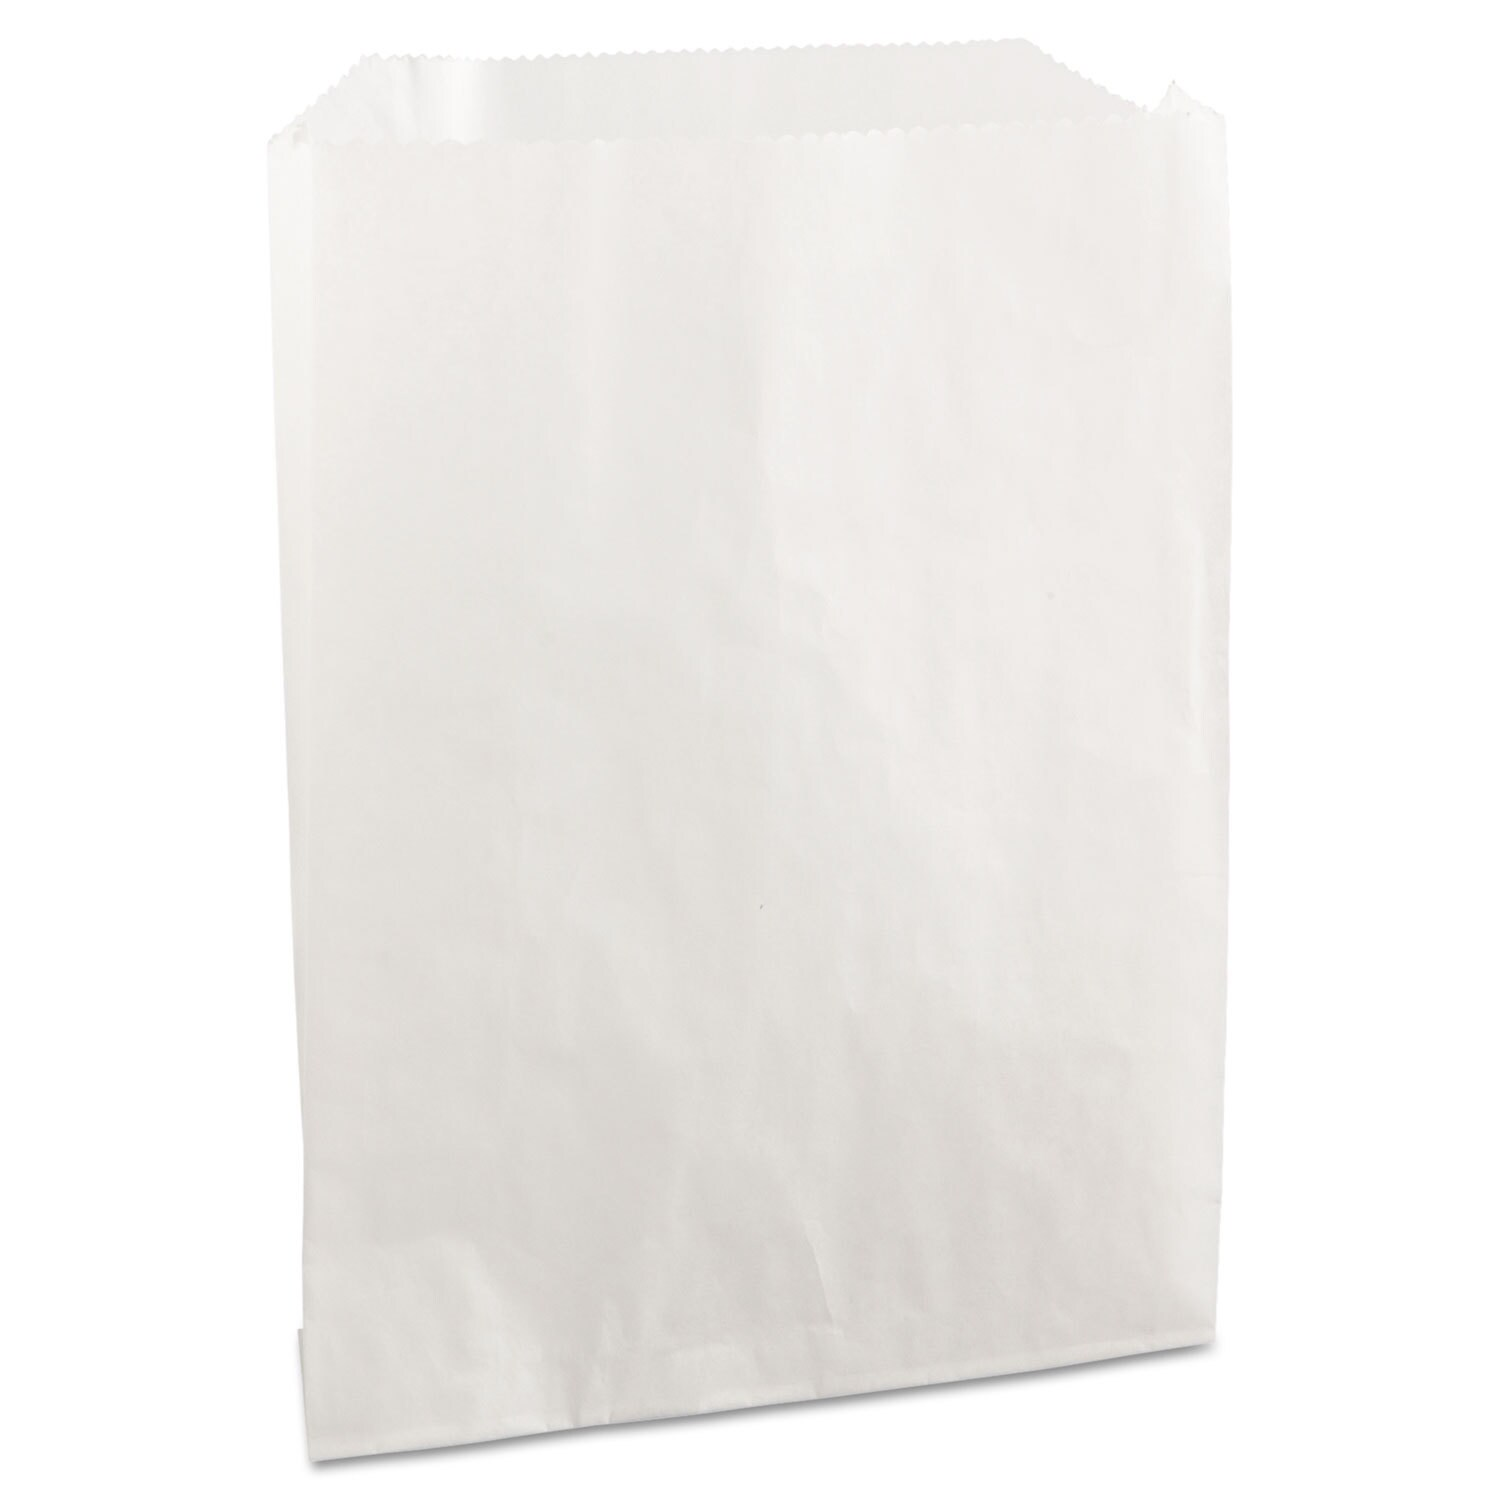 Bagcraft PB19 Grease-Resistant Sandwich/Pastry Bags 6 x 3...